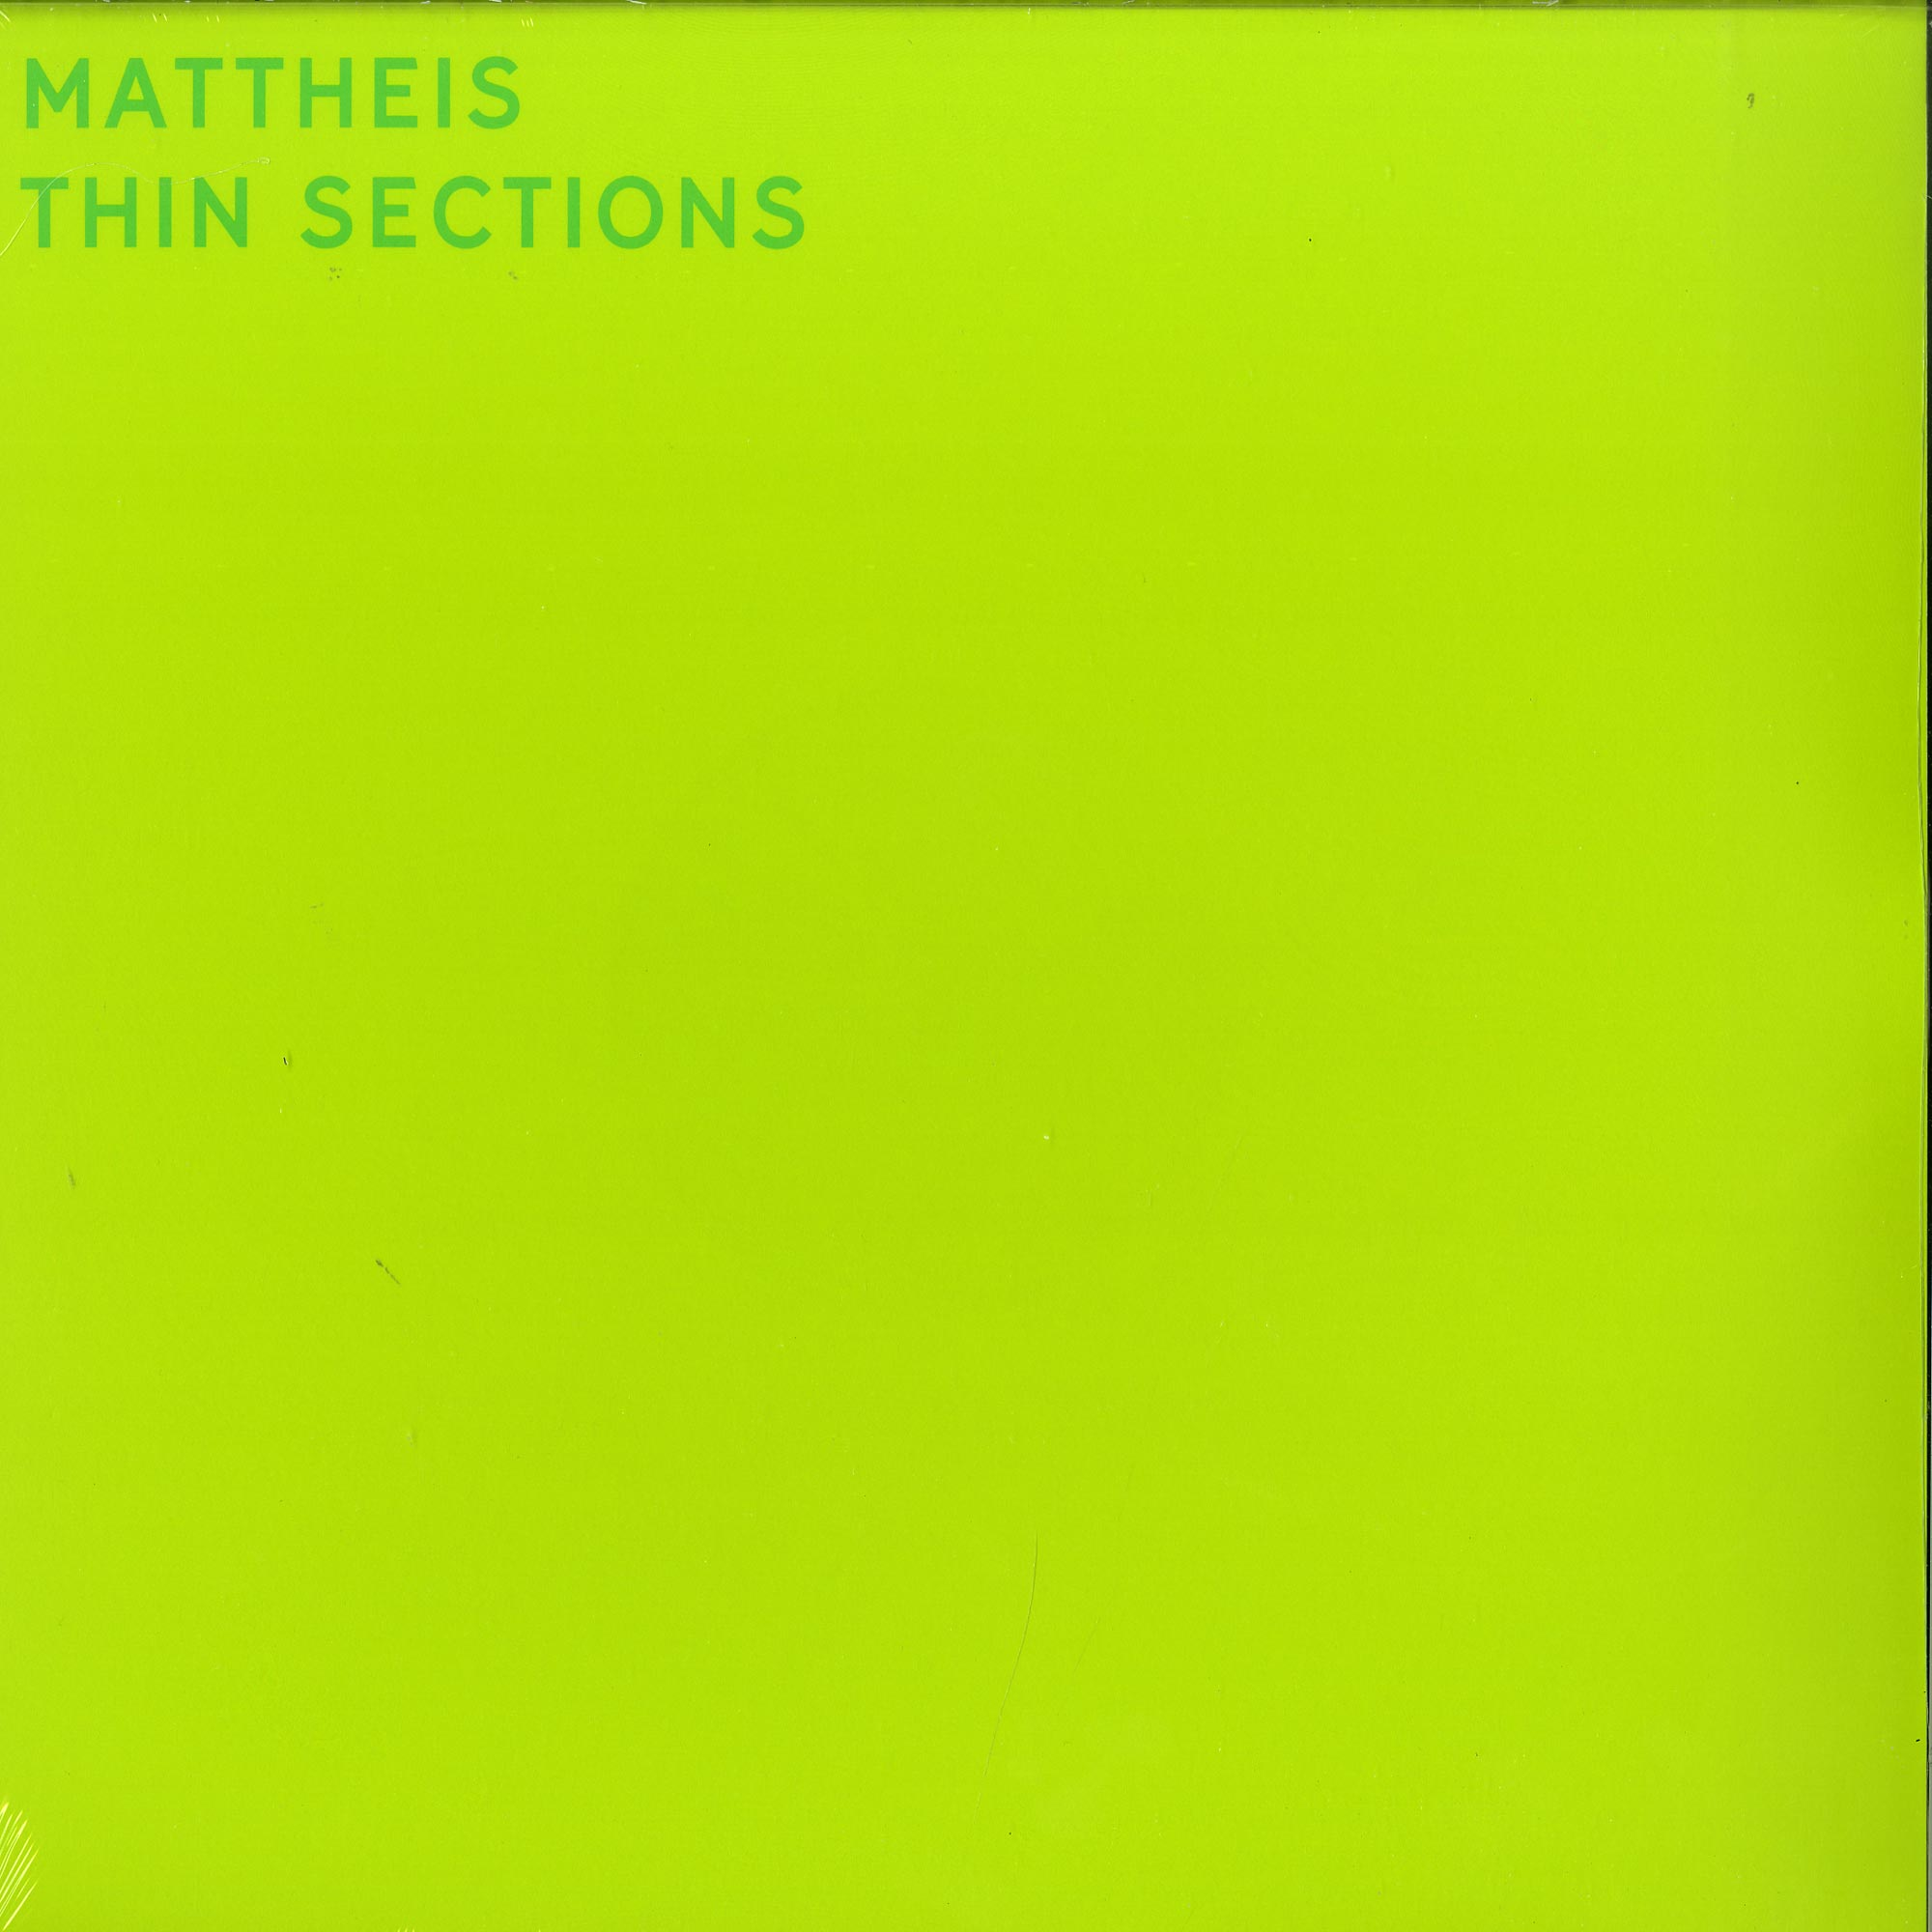 Mattheis - THIN SECTIONS